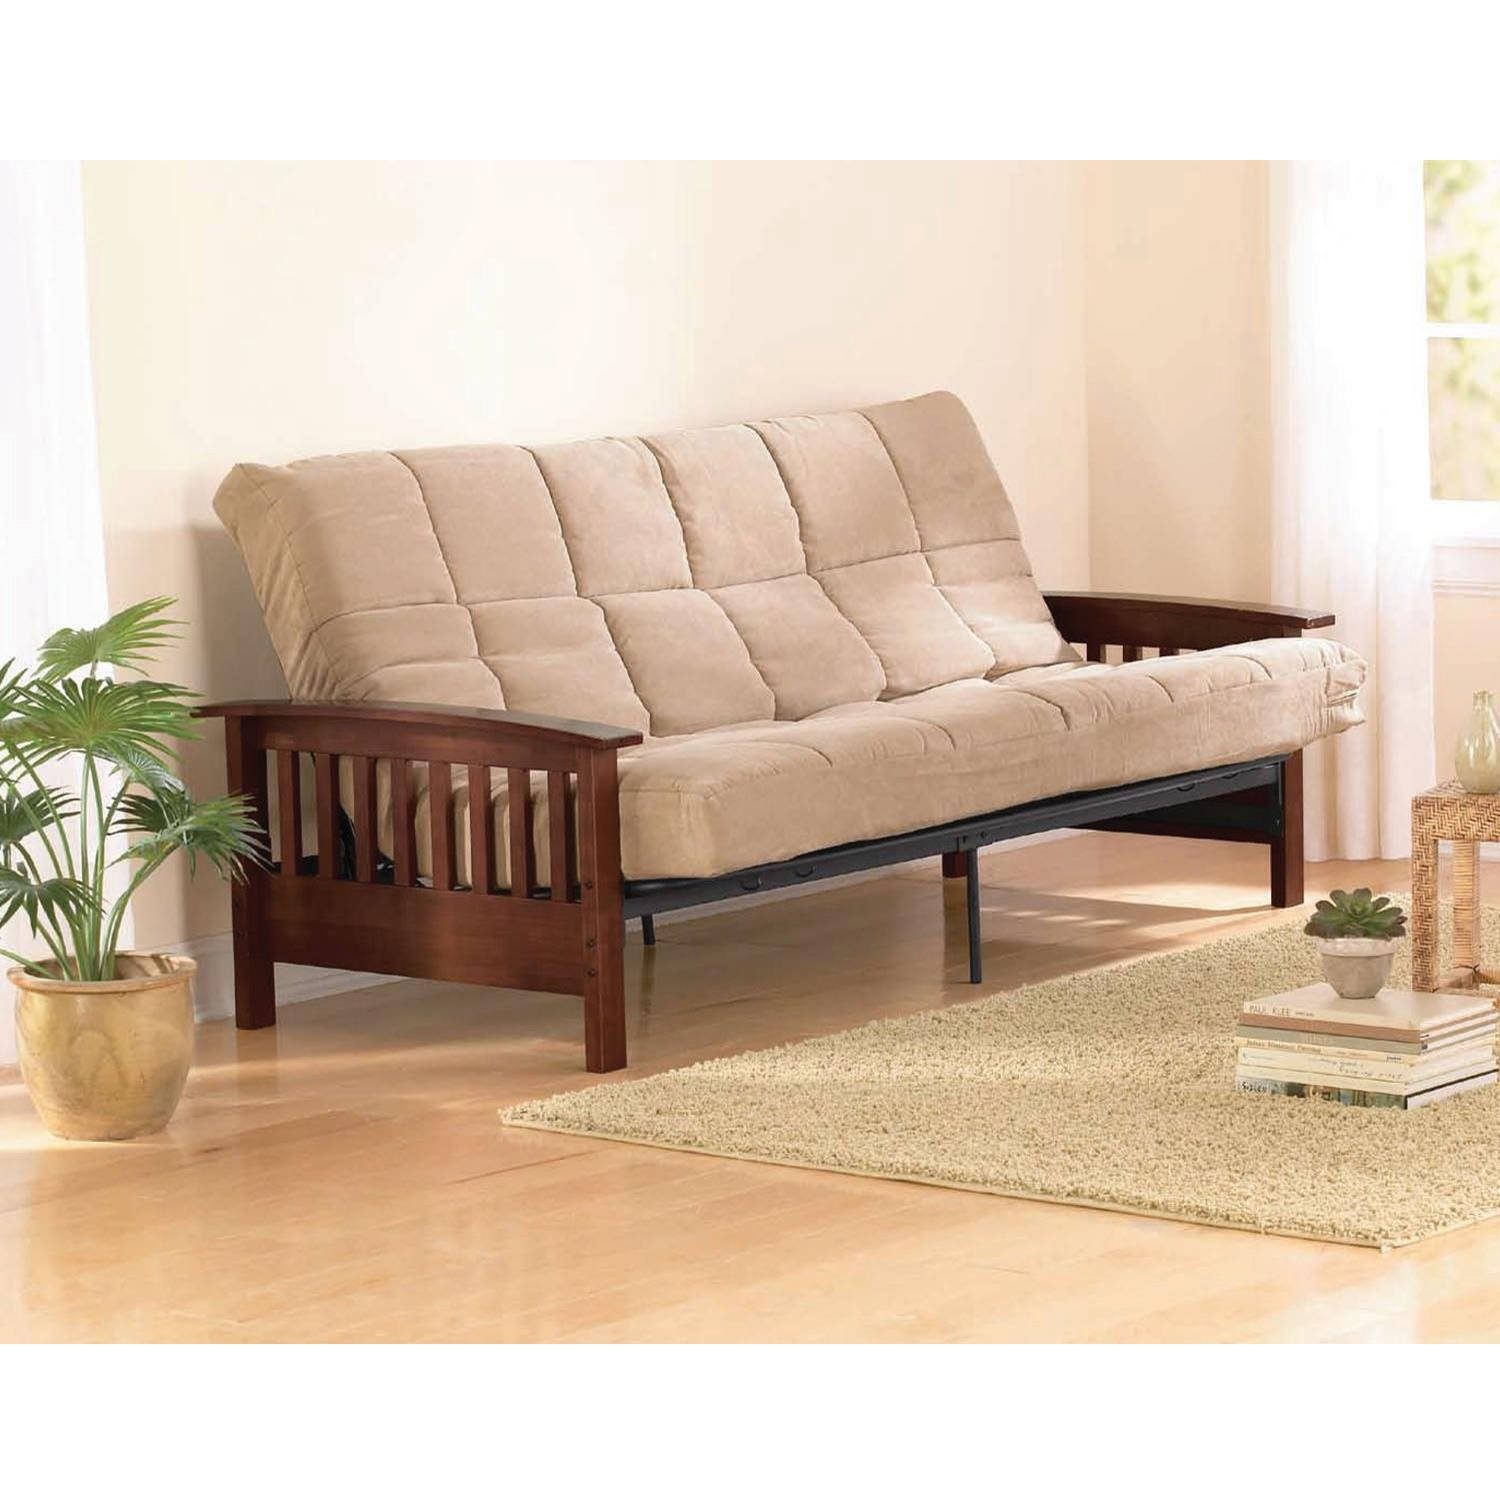 futon to chairs how mattress a collegefurnitureguide chair on use